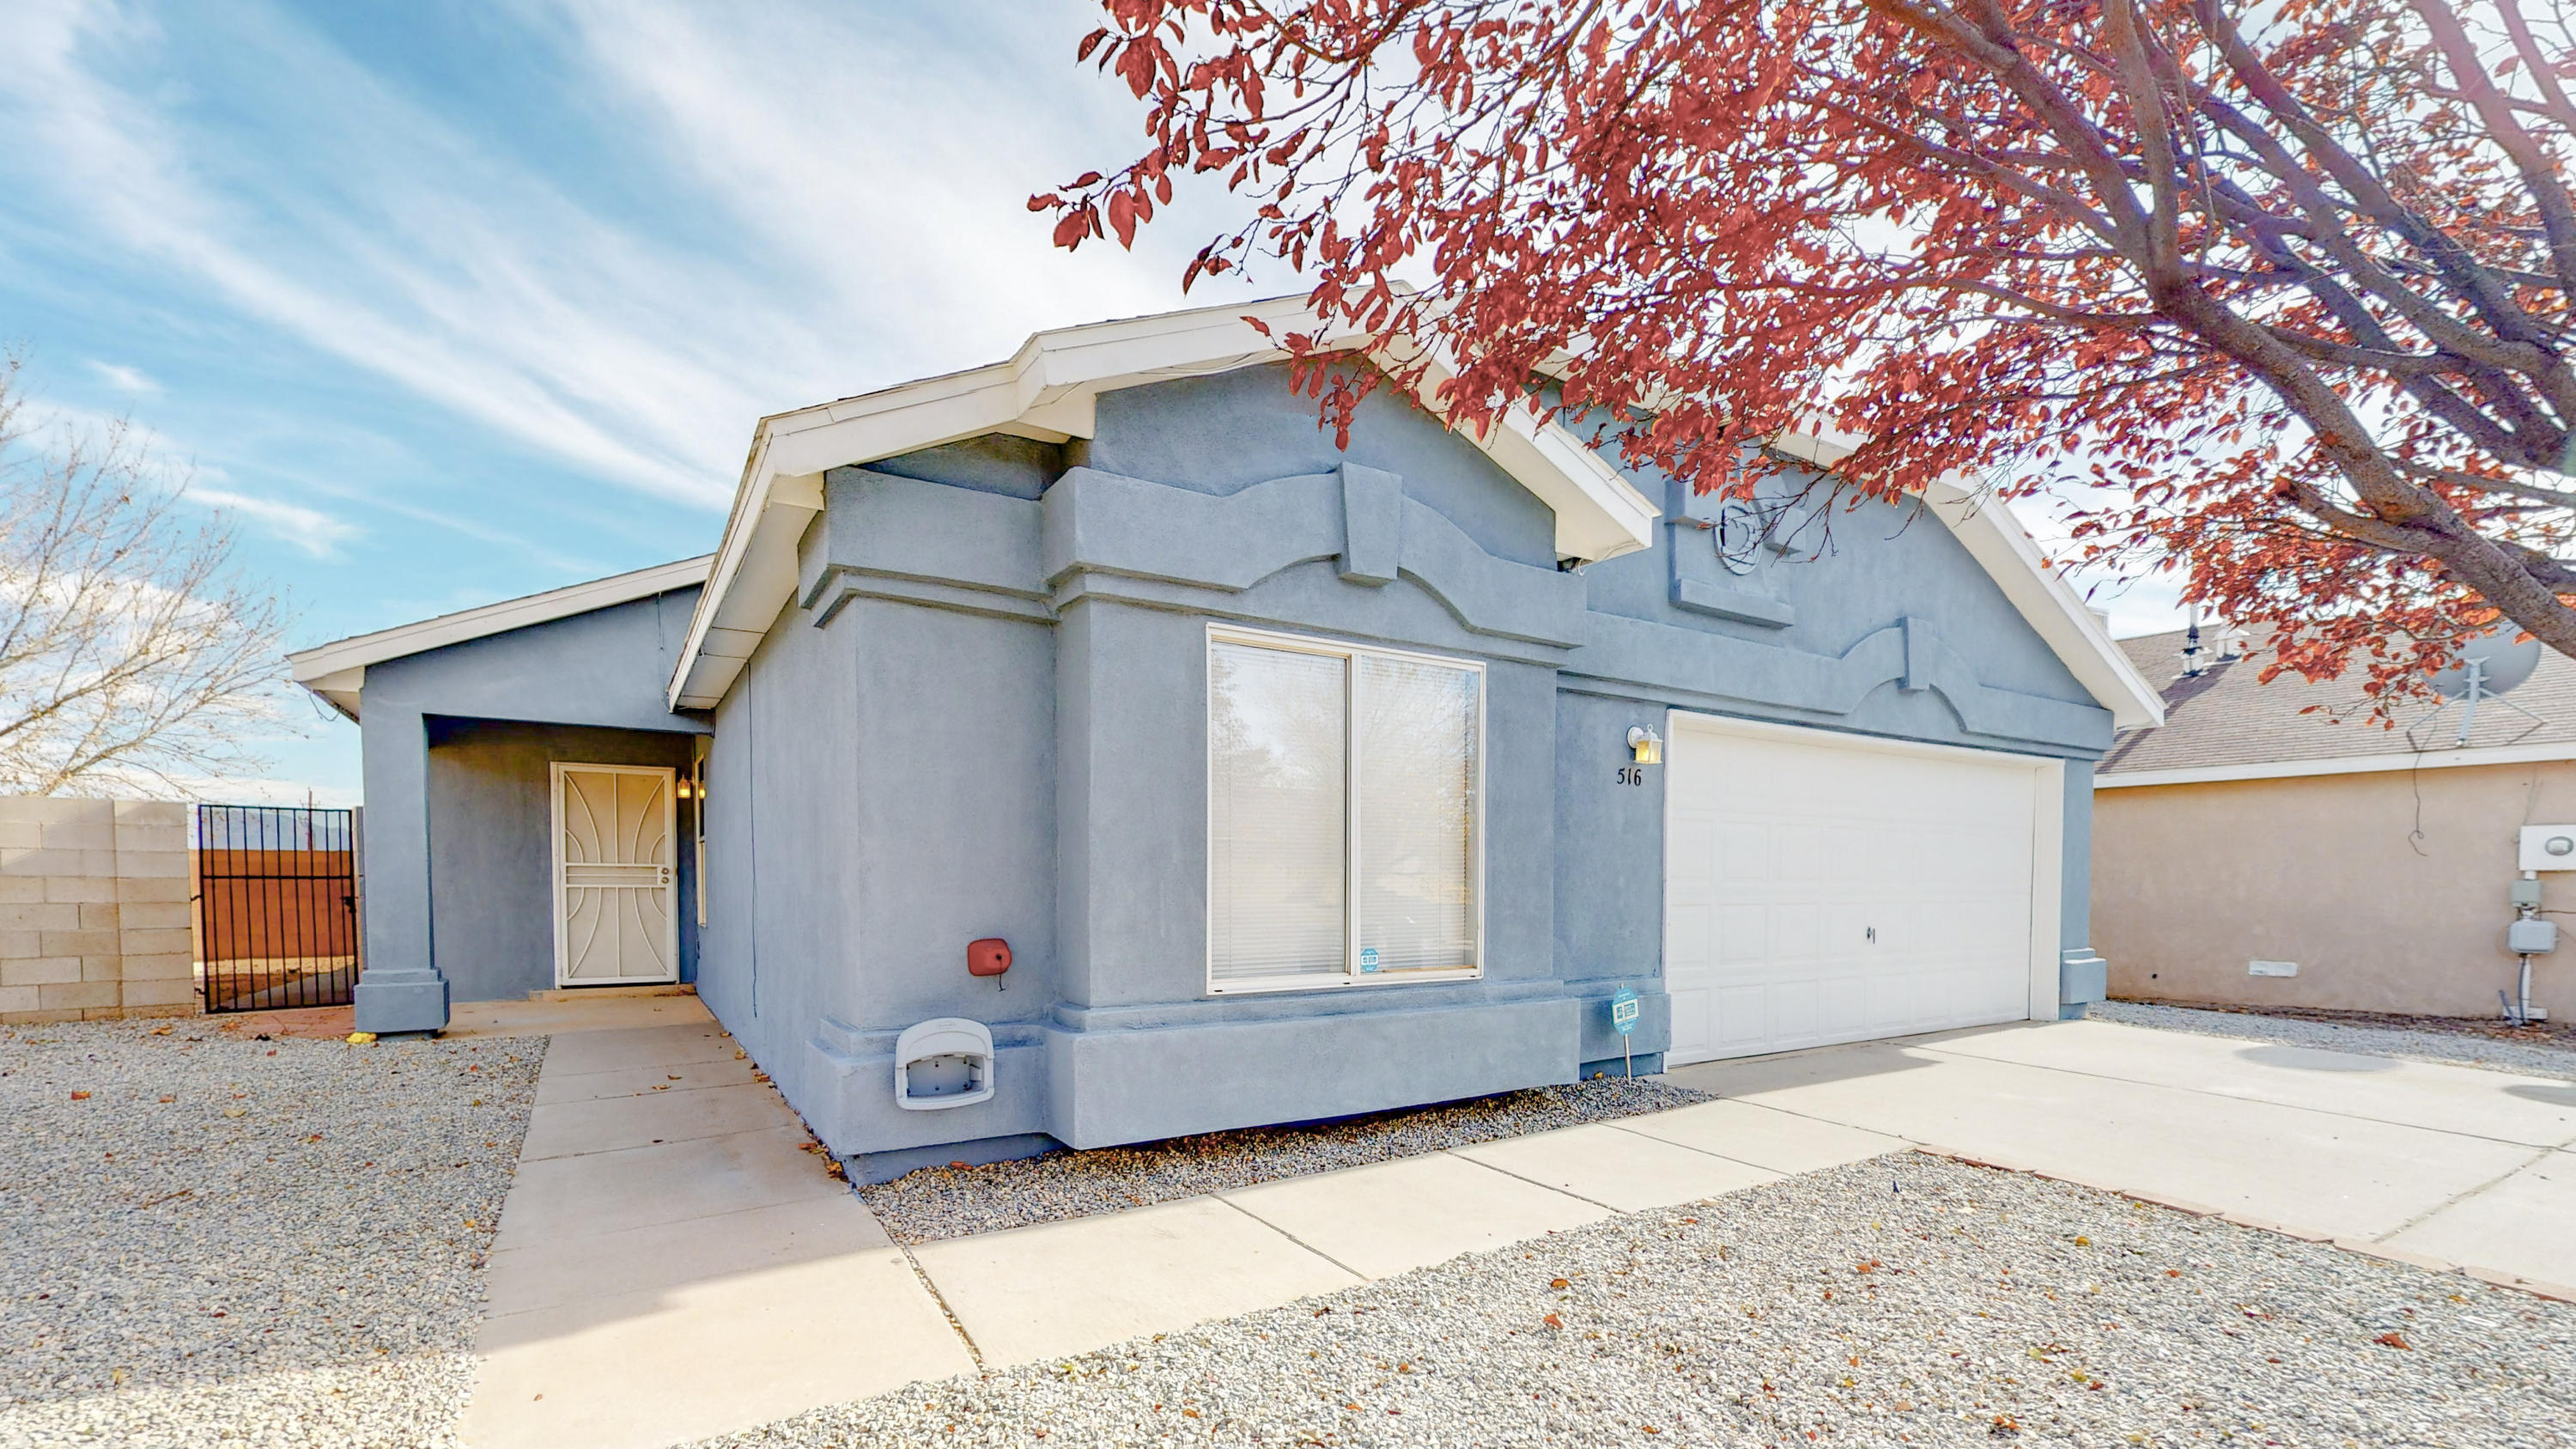 3 bedroom, 2 bath,  2 car garage, Home is turn key ready for new buyer. Open floor plan, raised ceilings, ceiling fans, laundry room, Tile floors, No carpet. Fresh paint throughout, including Exterior.  1 block from park.  Home will not last long